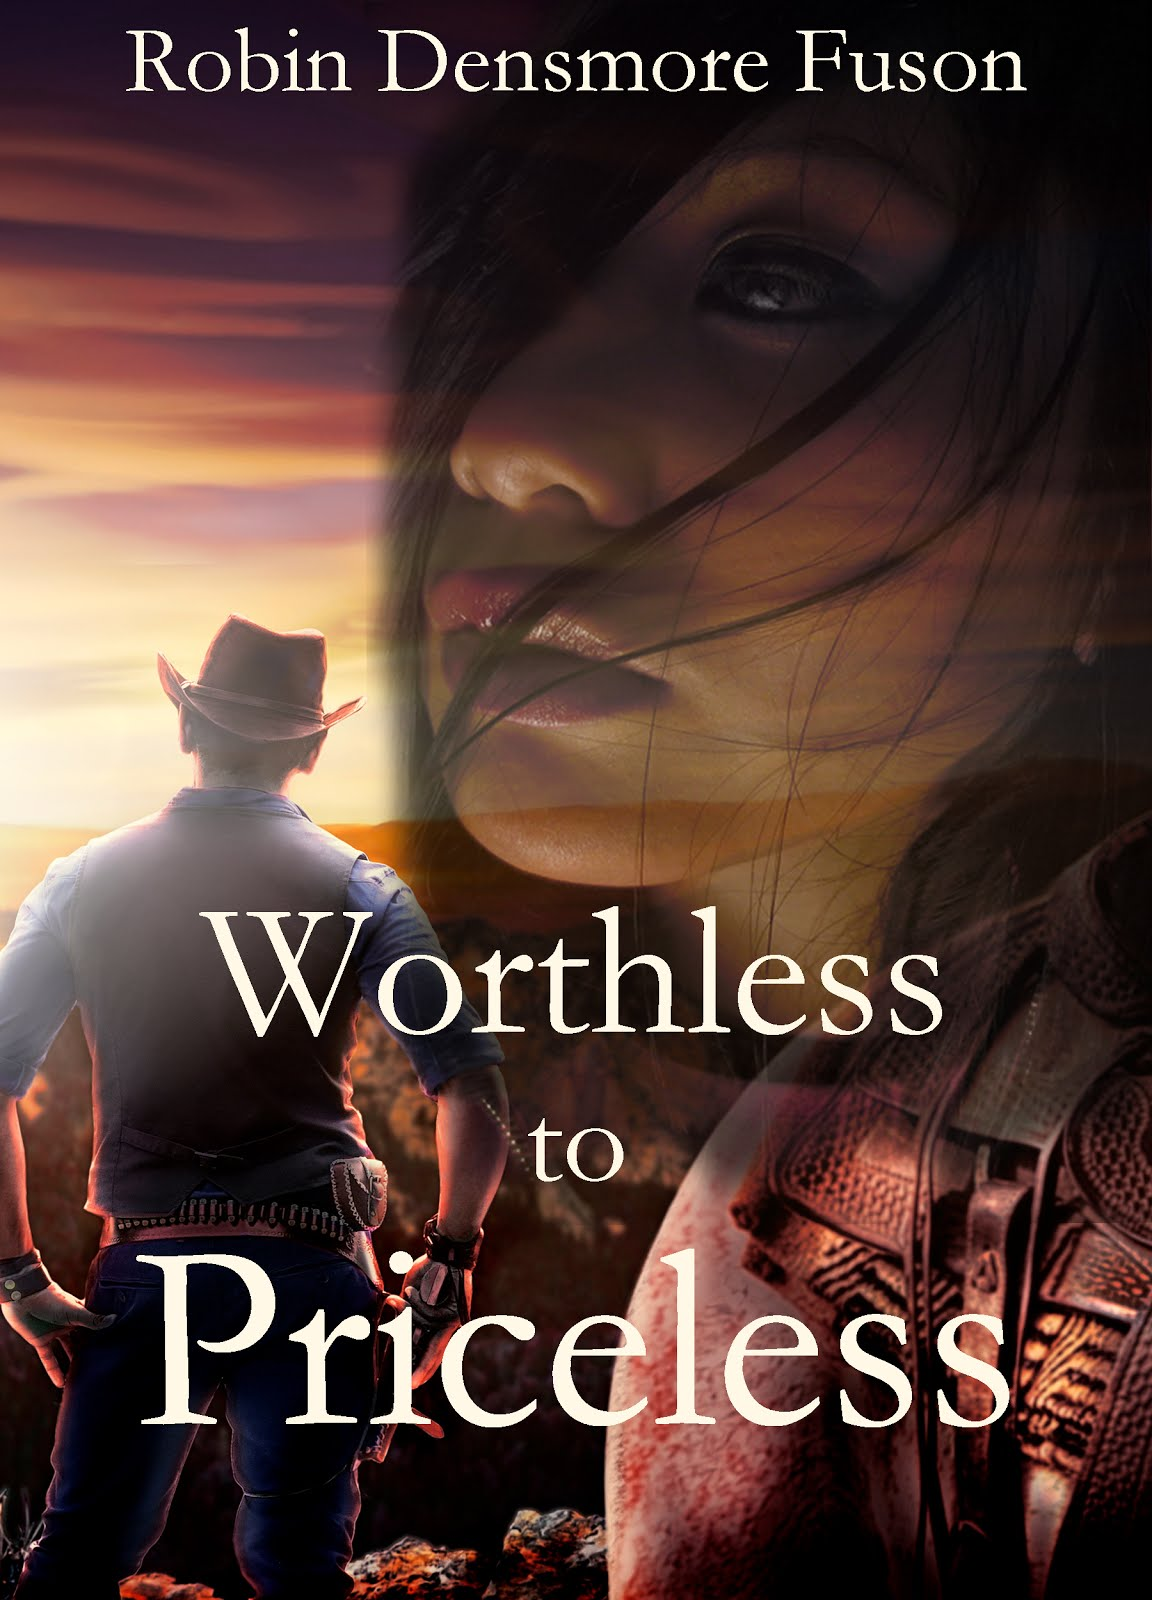 Worthless to Priceless